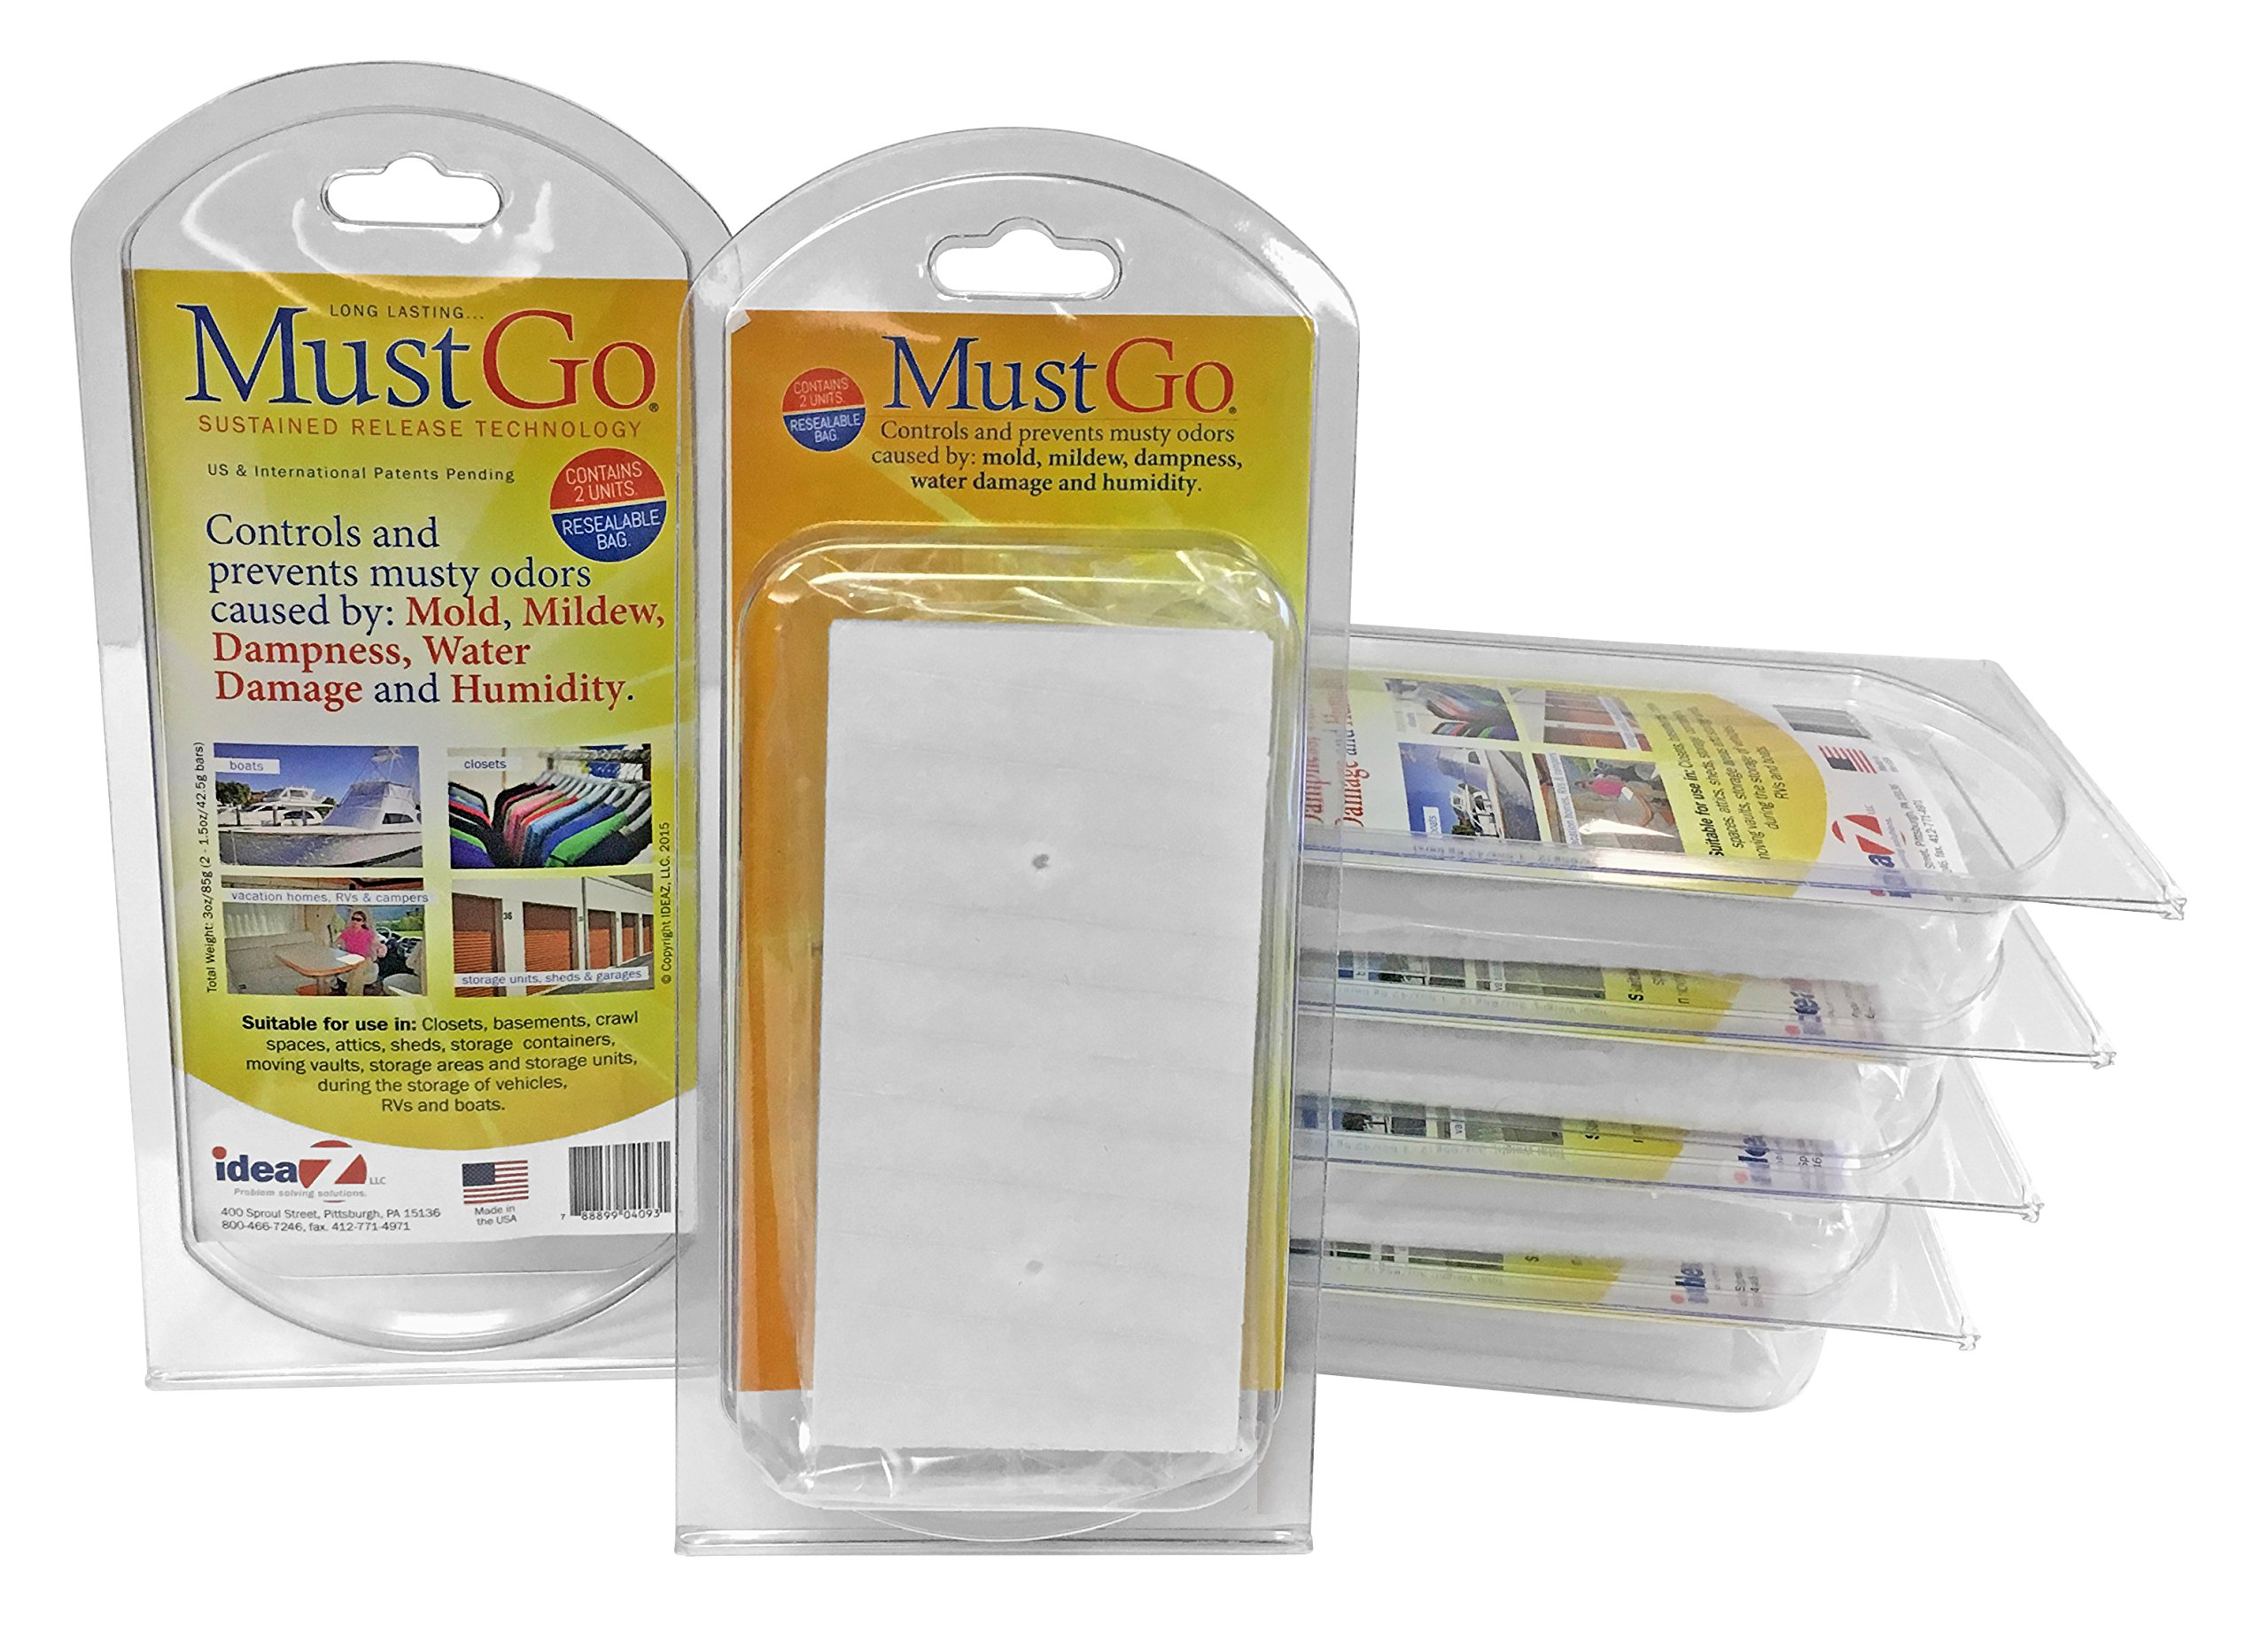 MustGo Odor Eliminator Solid Bars - Controls and Prevents Damp, Musty, Mildew Odors in Closets, Basements, Attics and Storage Units - Unscented (6 x 2 Pack)